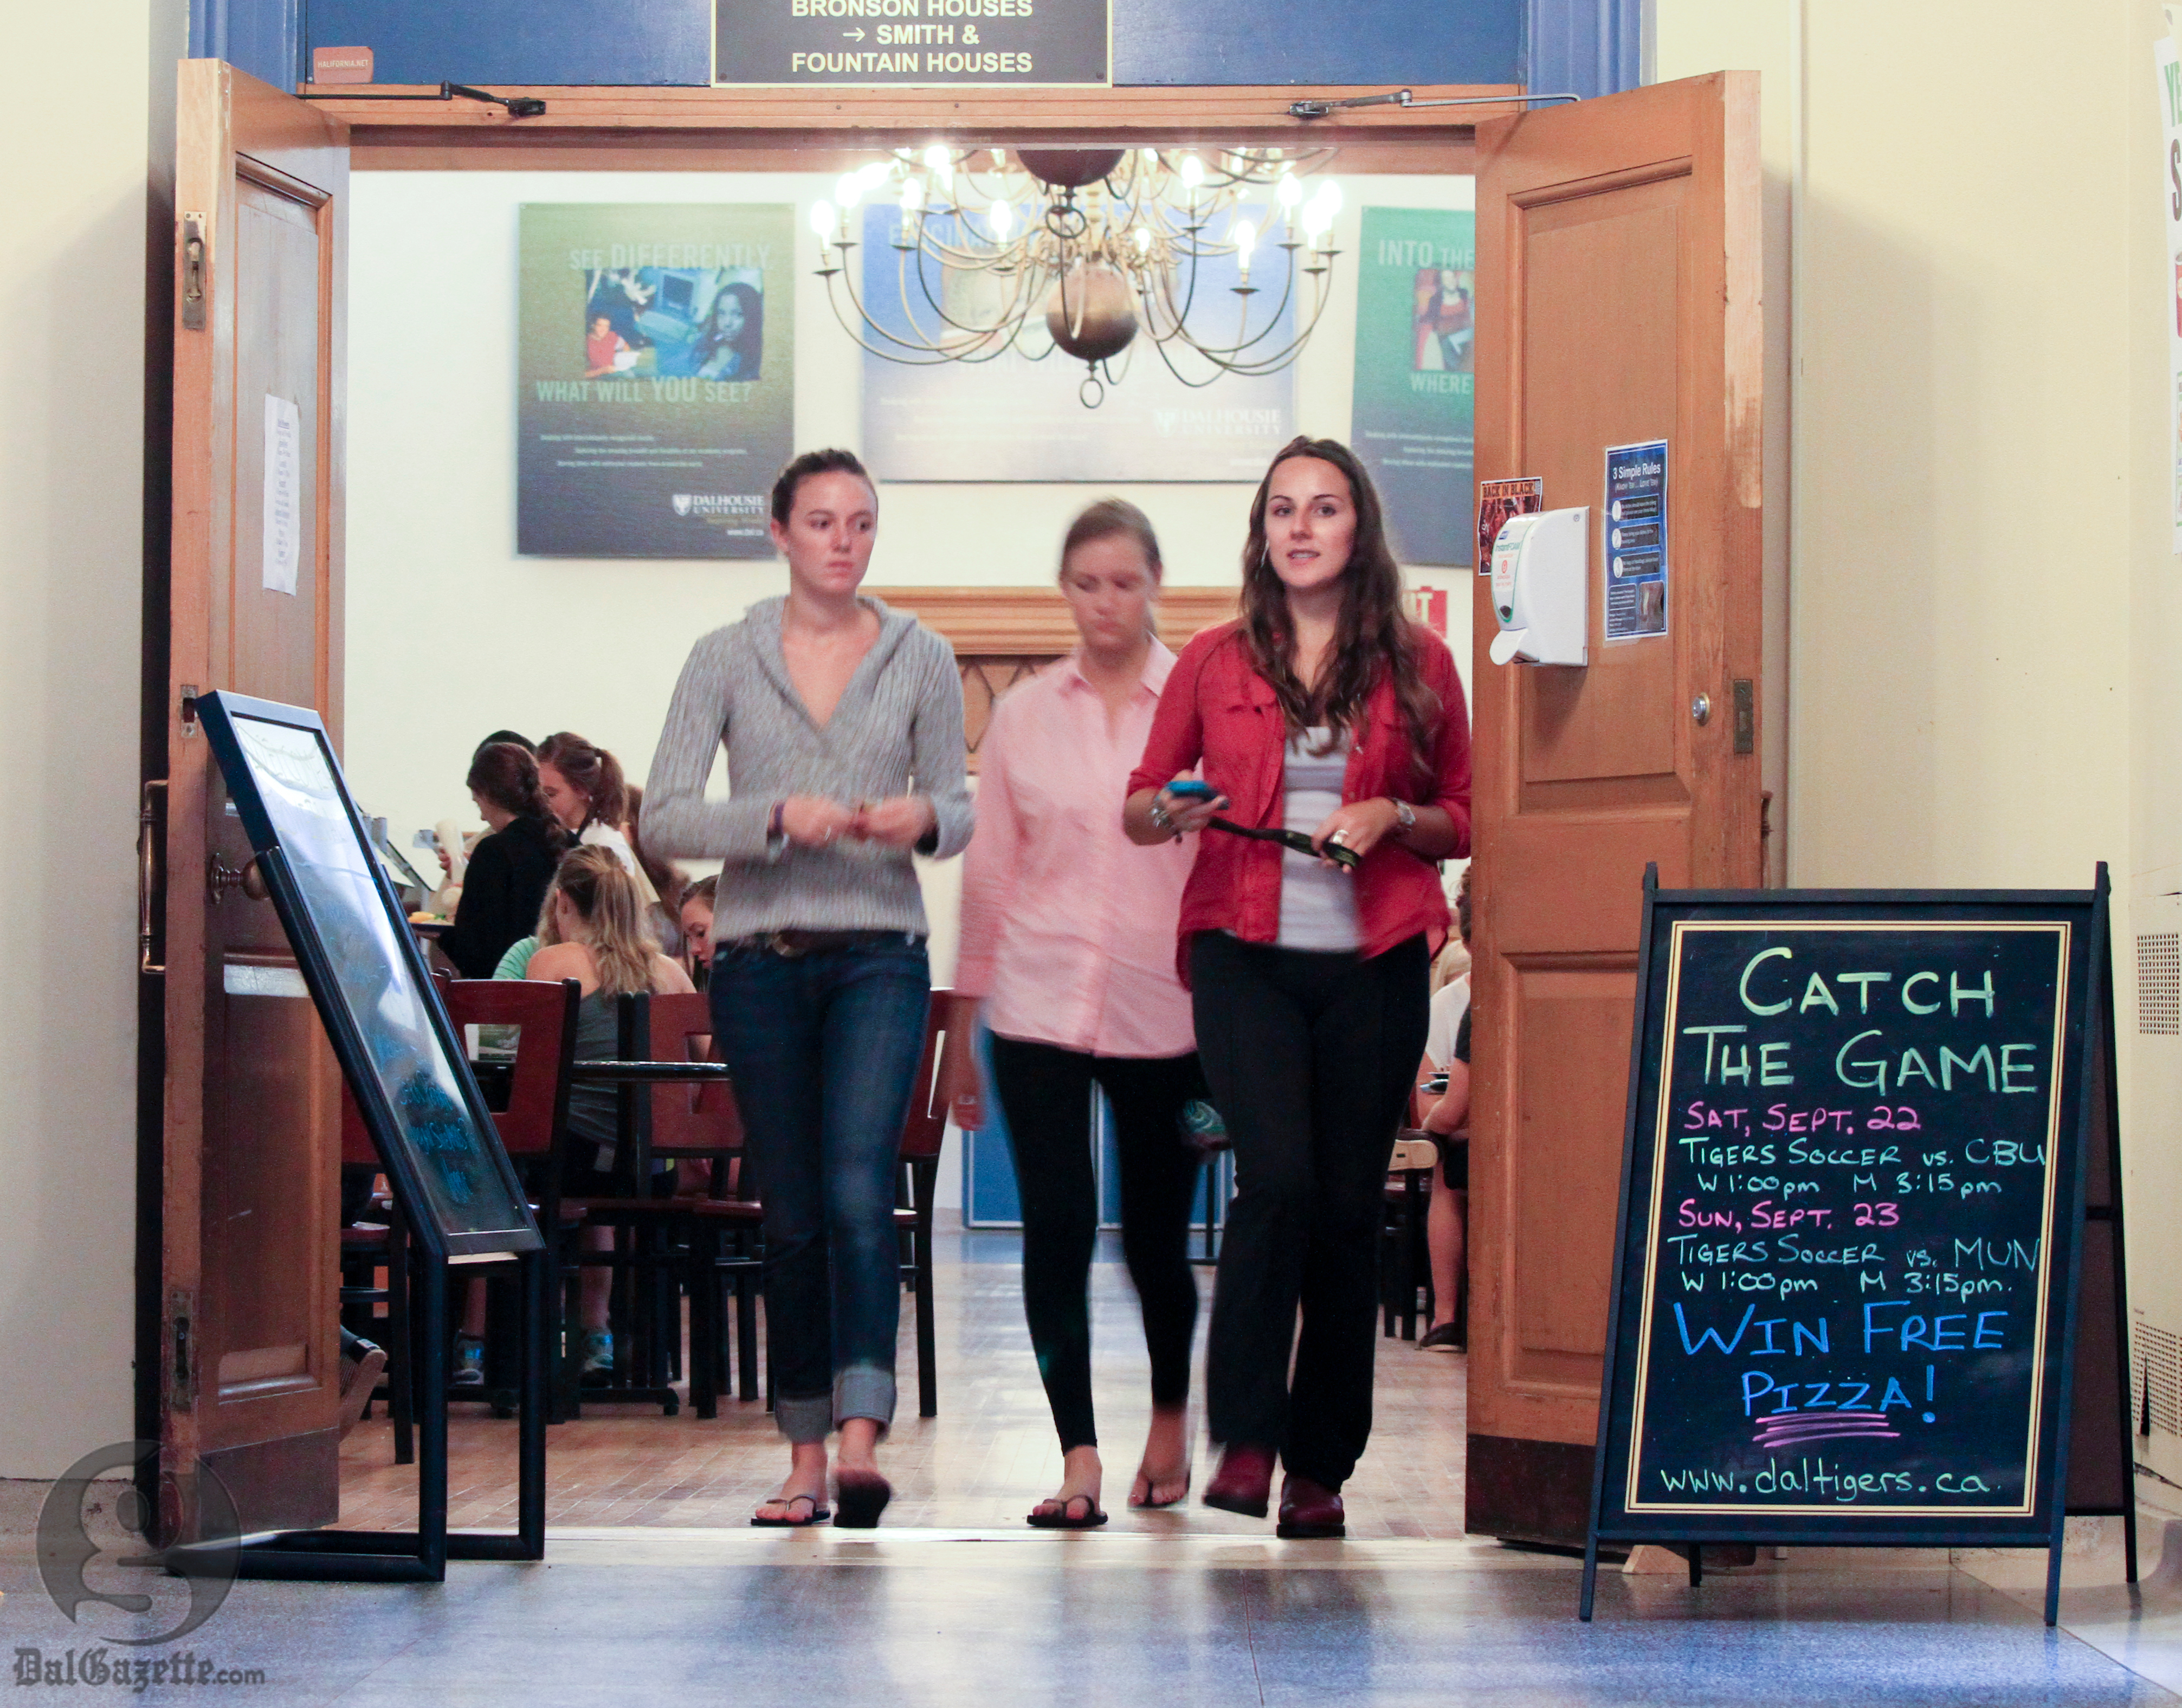 Inflexible dining hours are a setback for some student schedules. (Photo: Bryn Karcha)